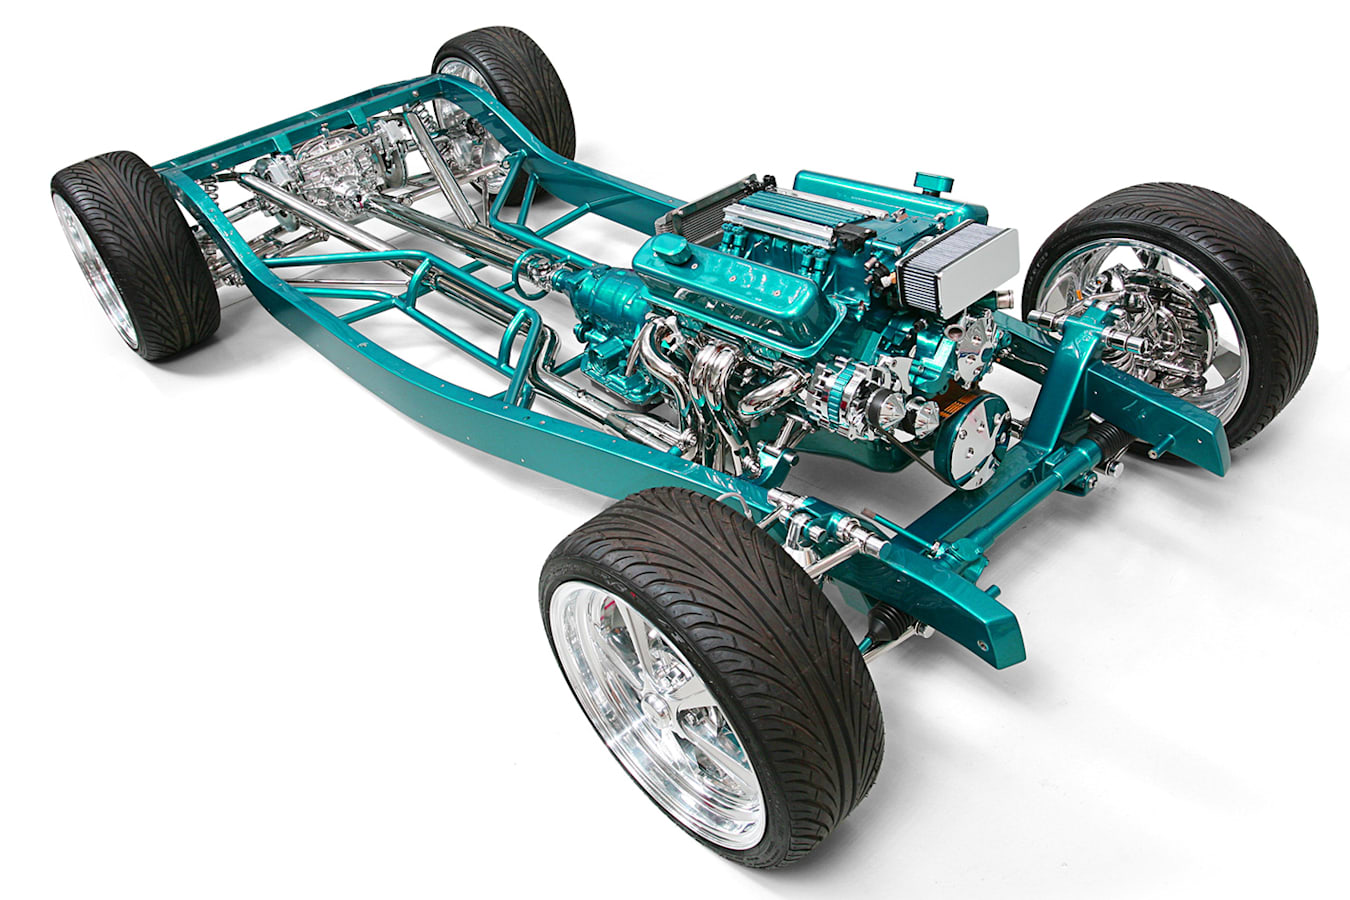 Ford Roadster chassis